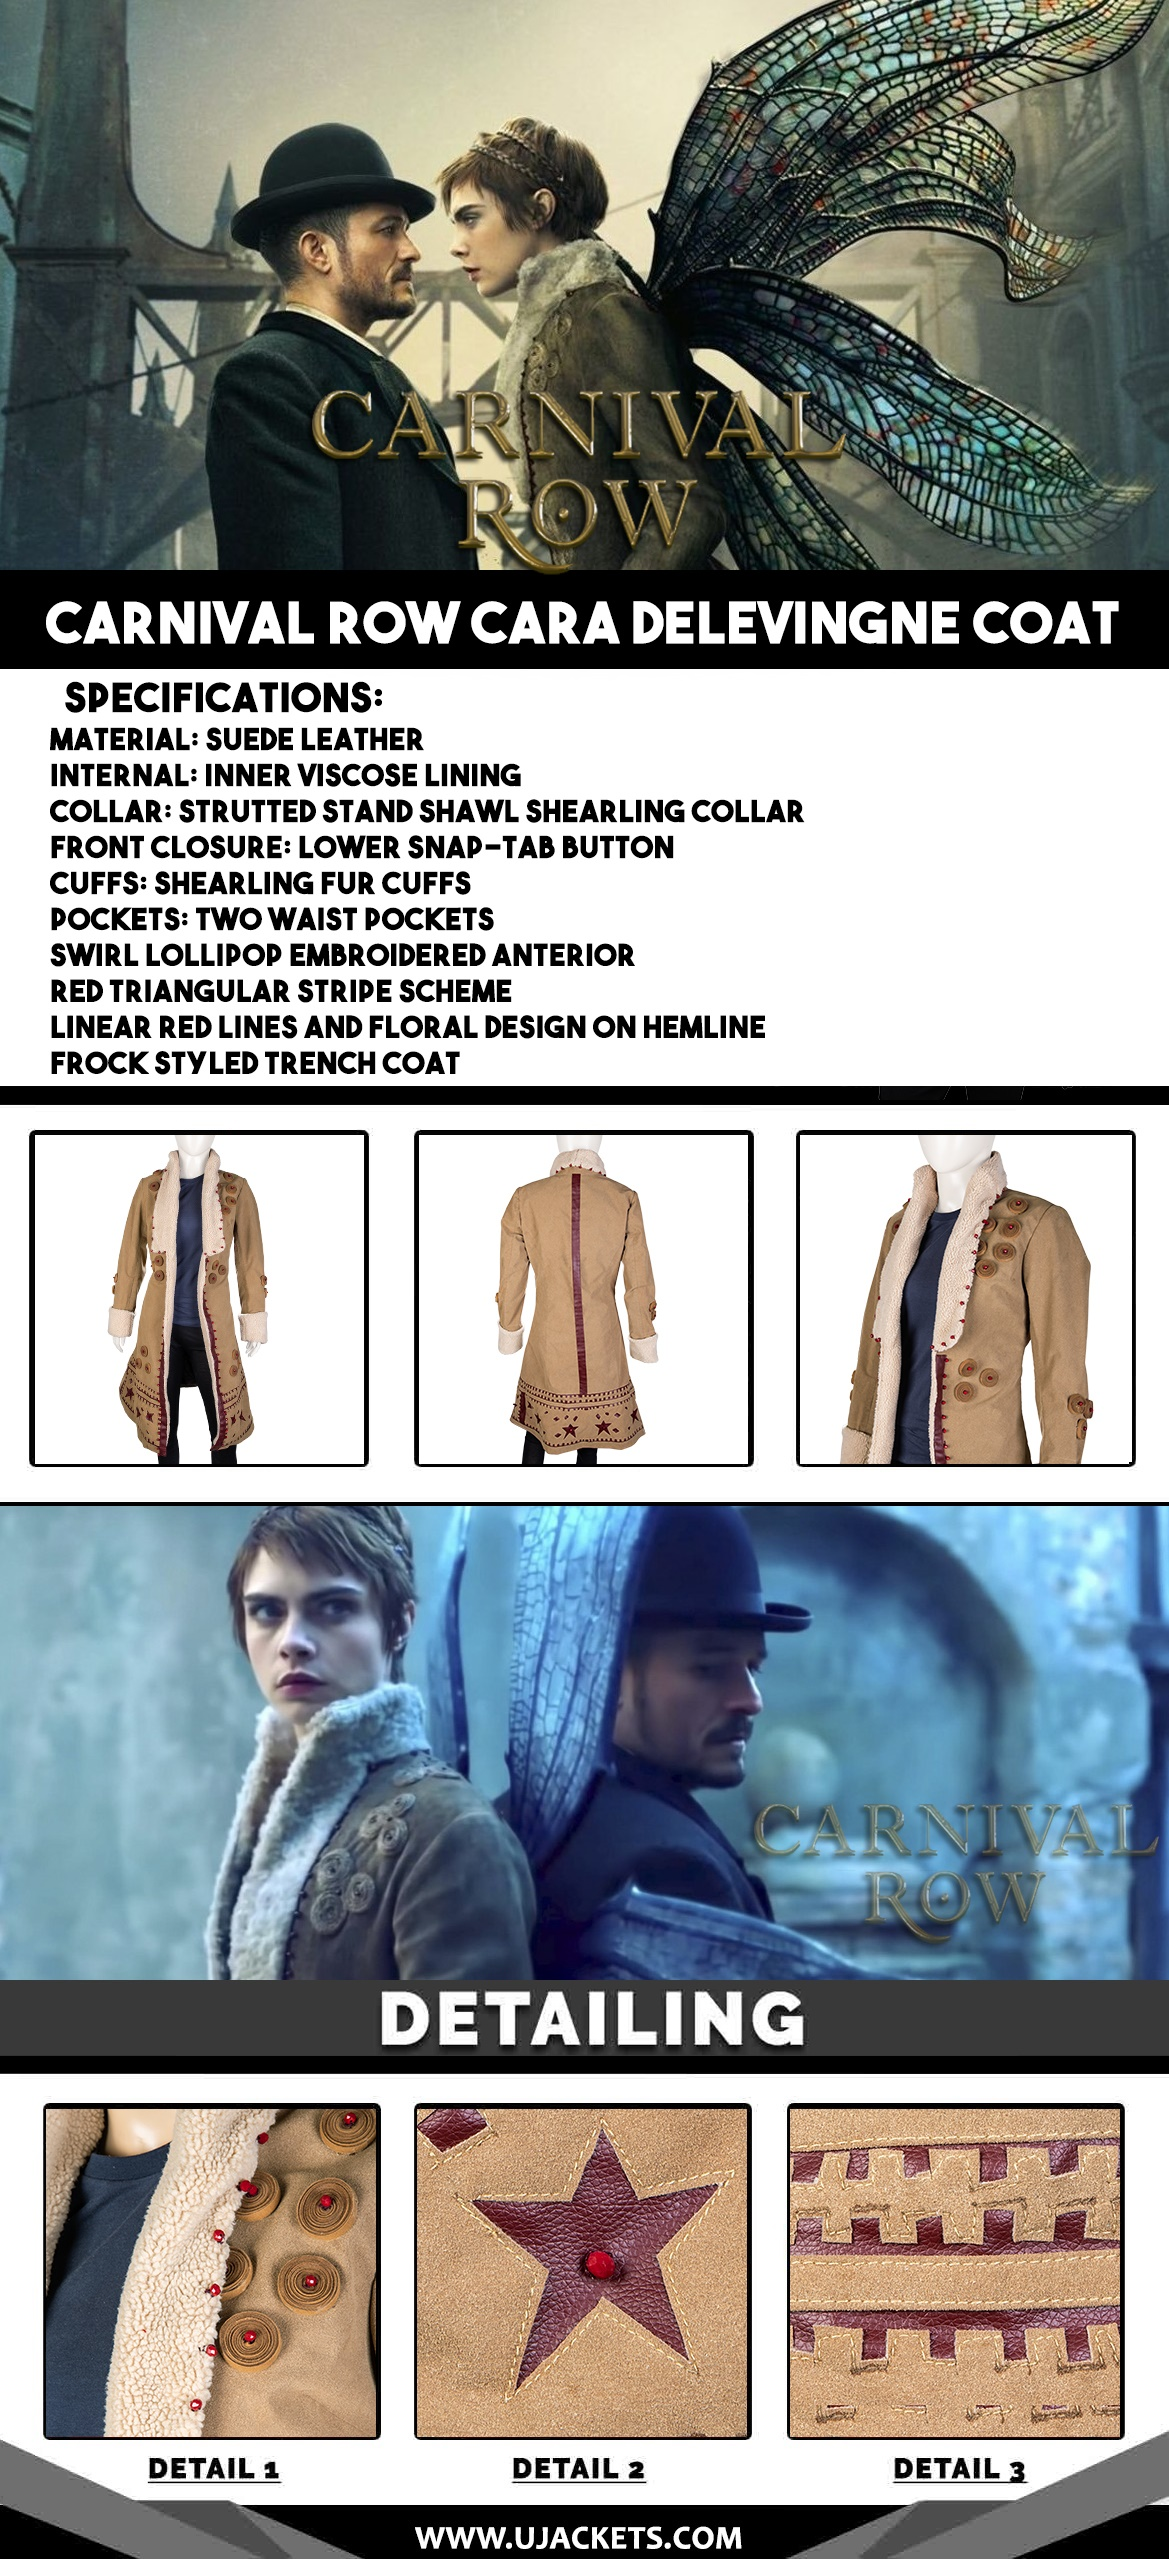 infographic--Carnival-Row-Cara-Delevingne-Coat